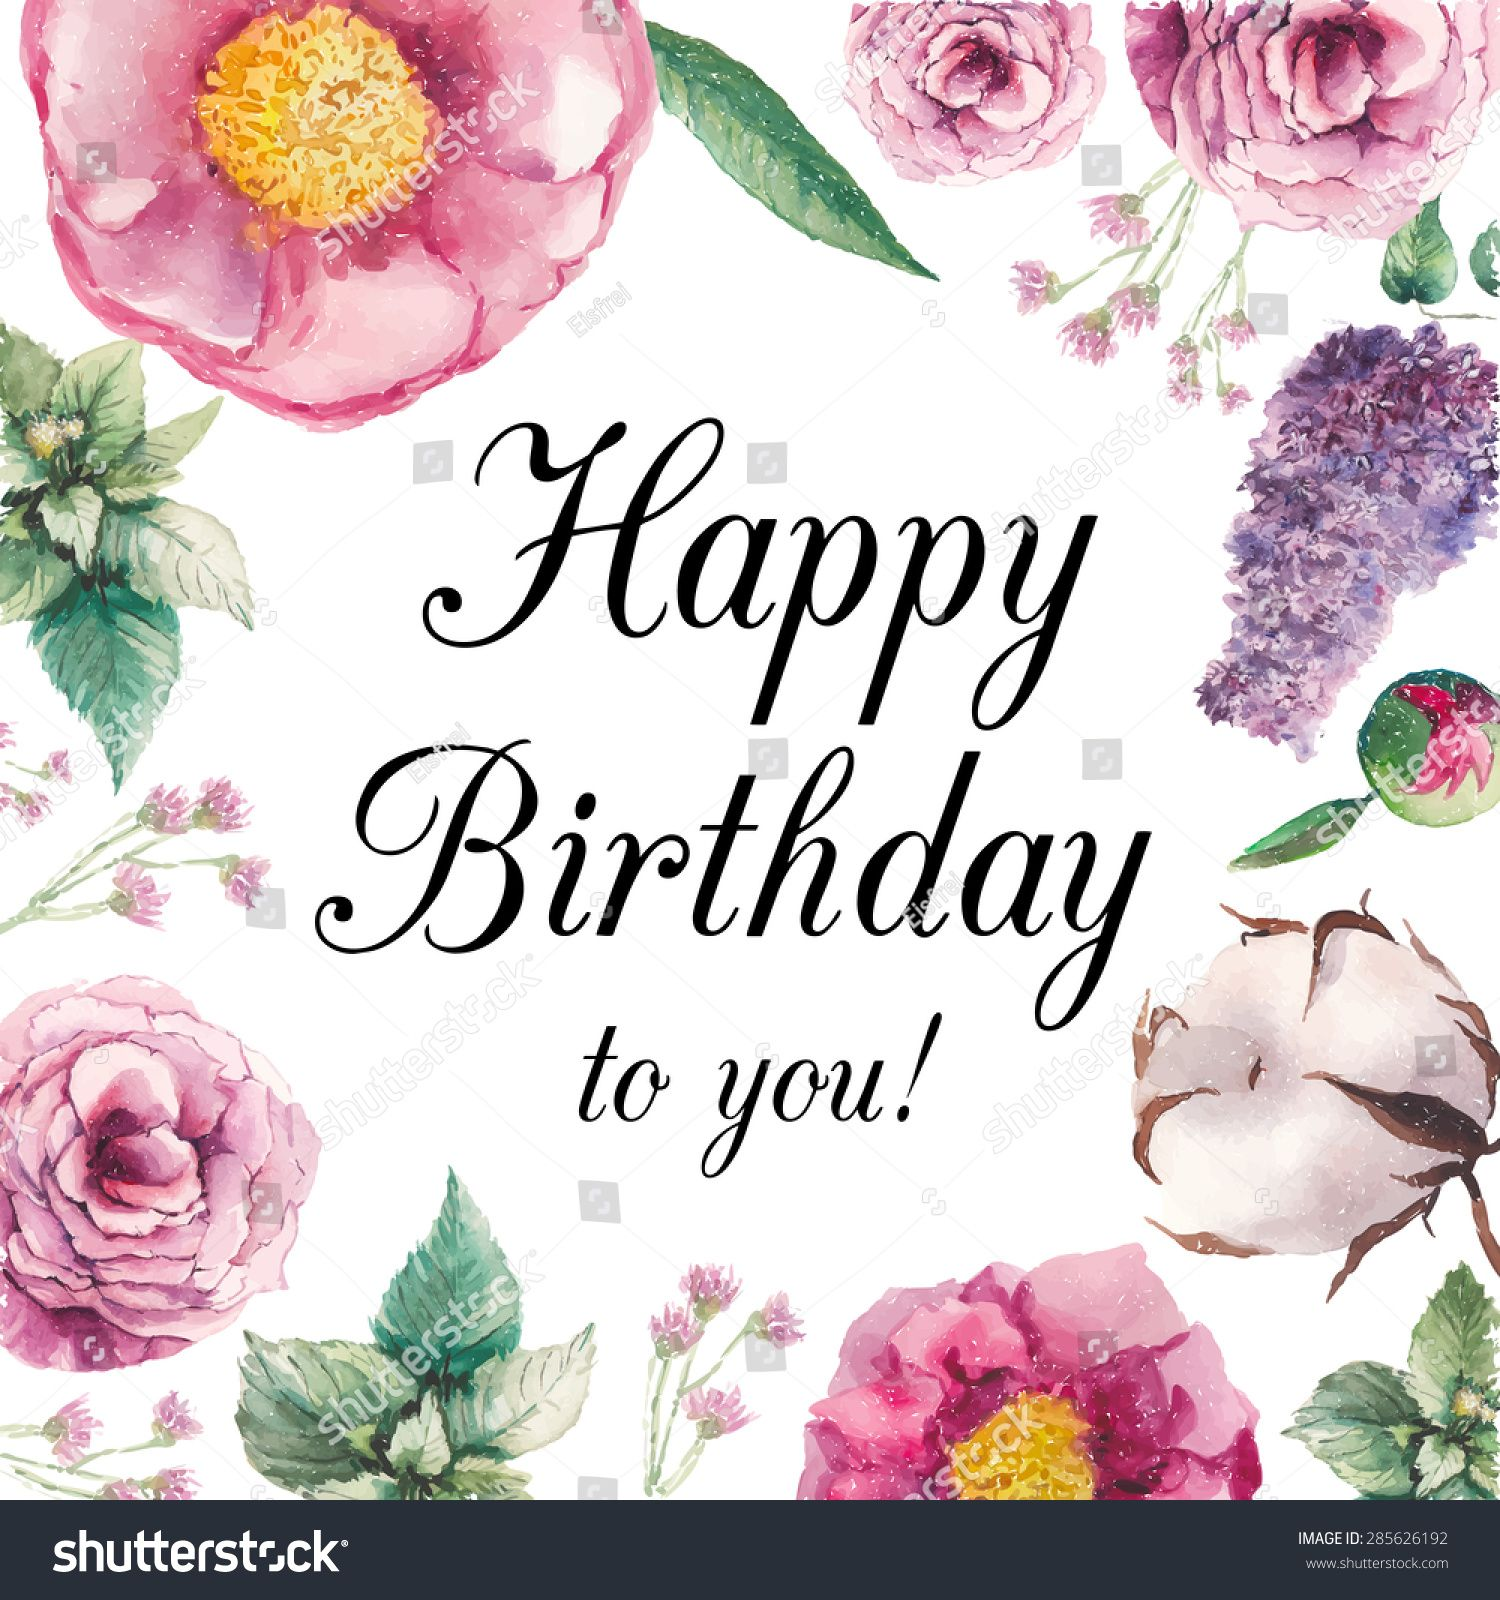 Pin By Kamila Inoyatova On Birthday Flowers Pinterest Birthday